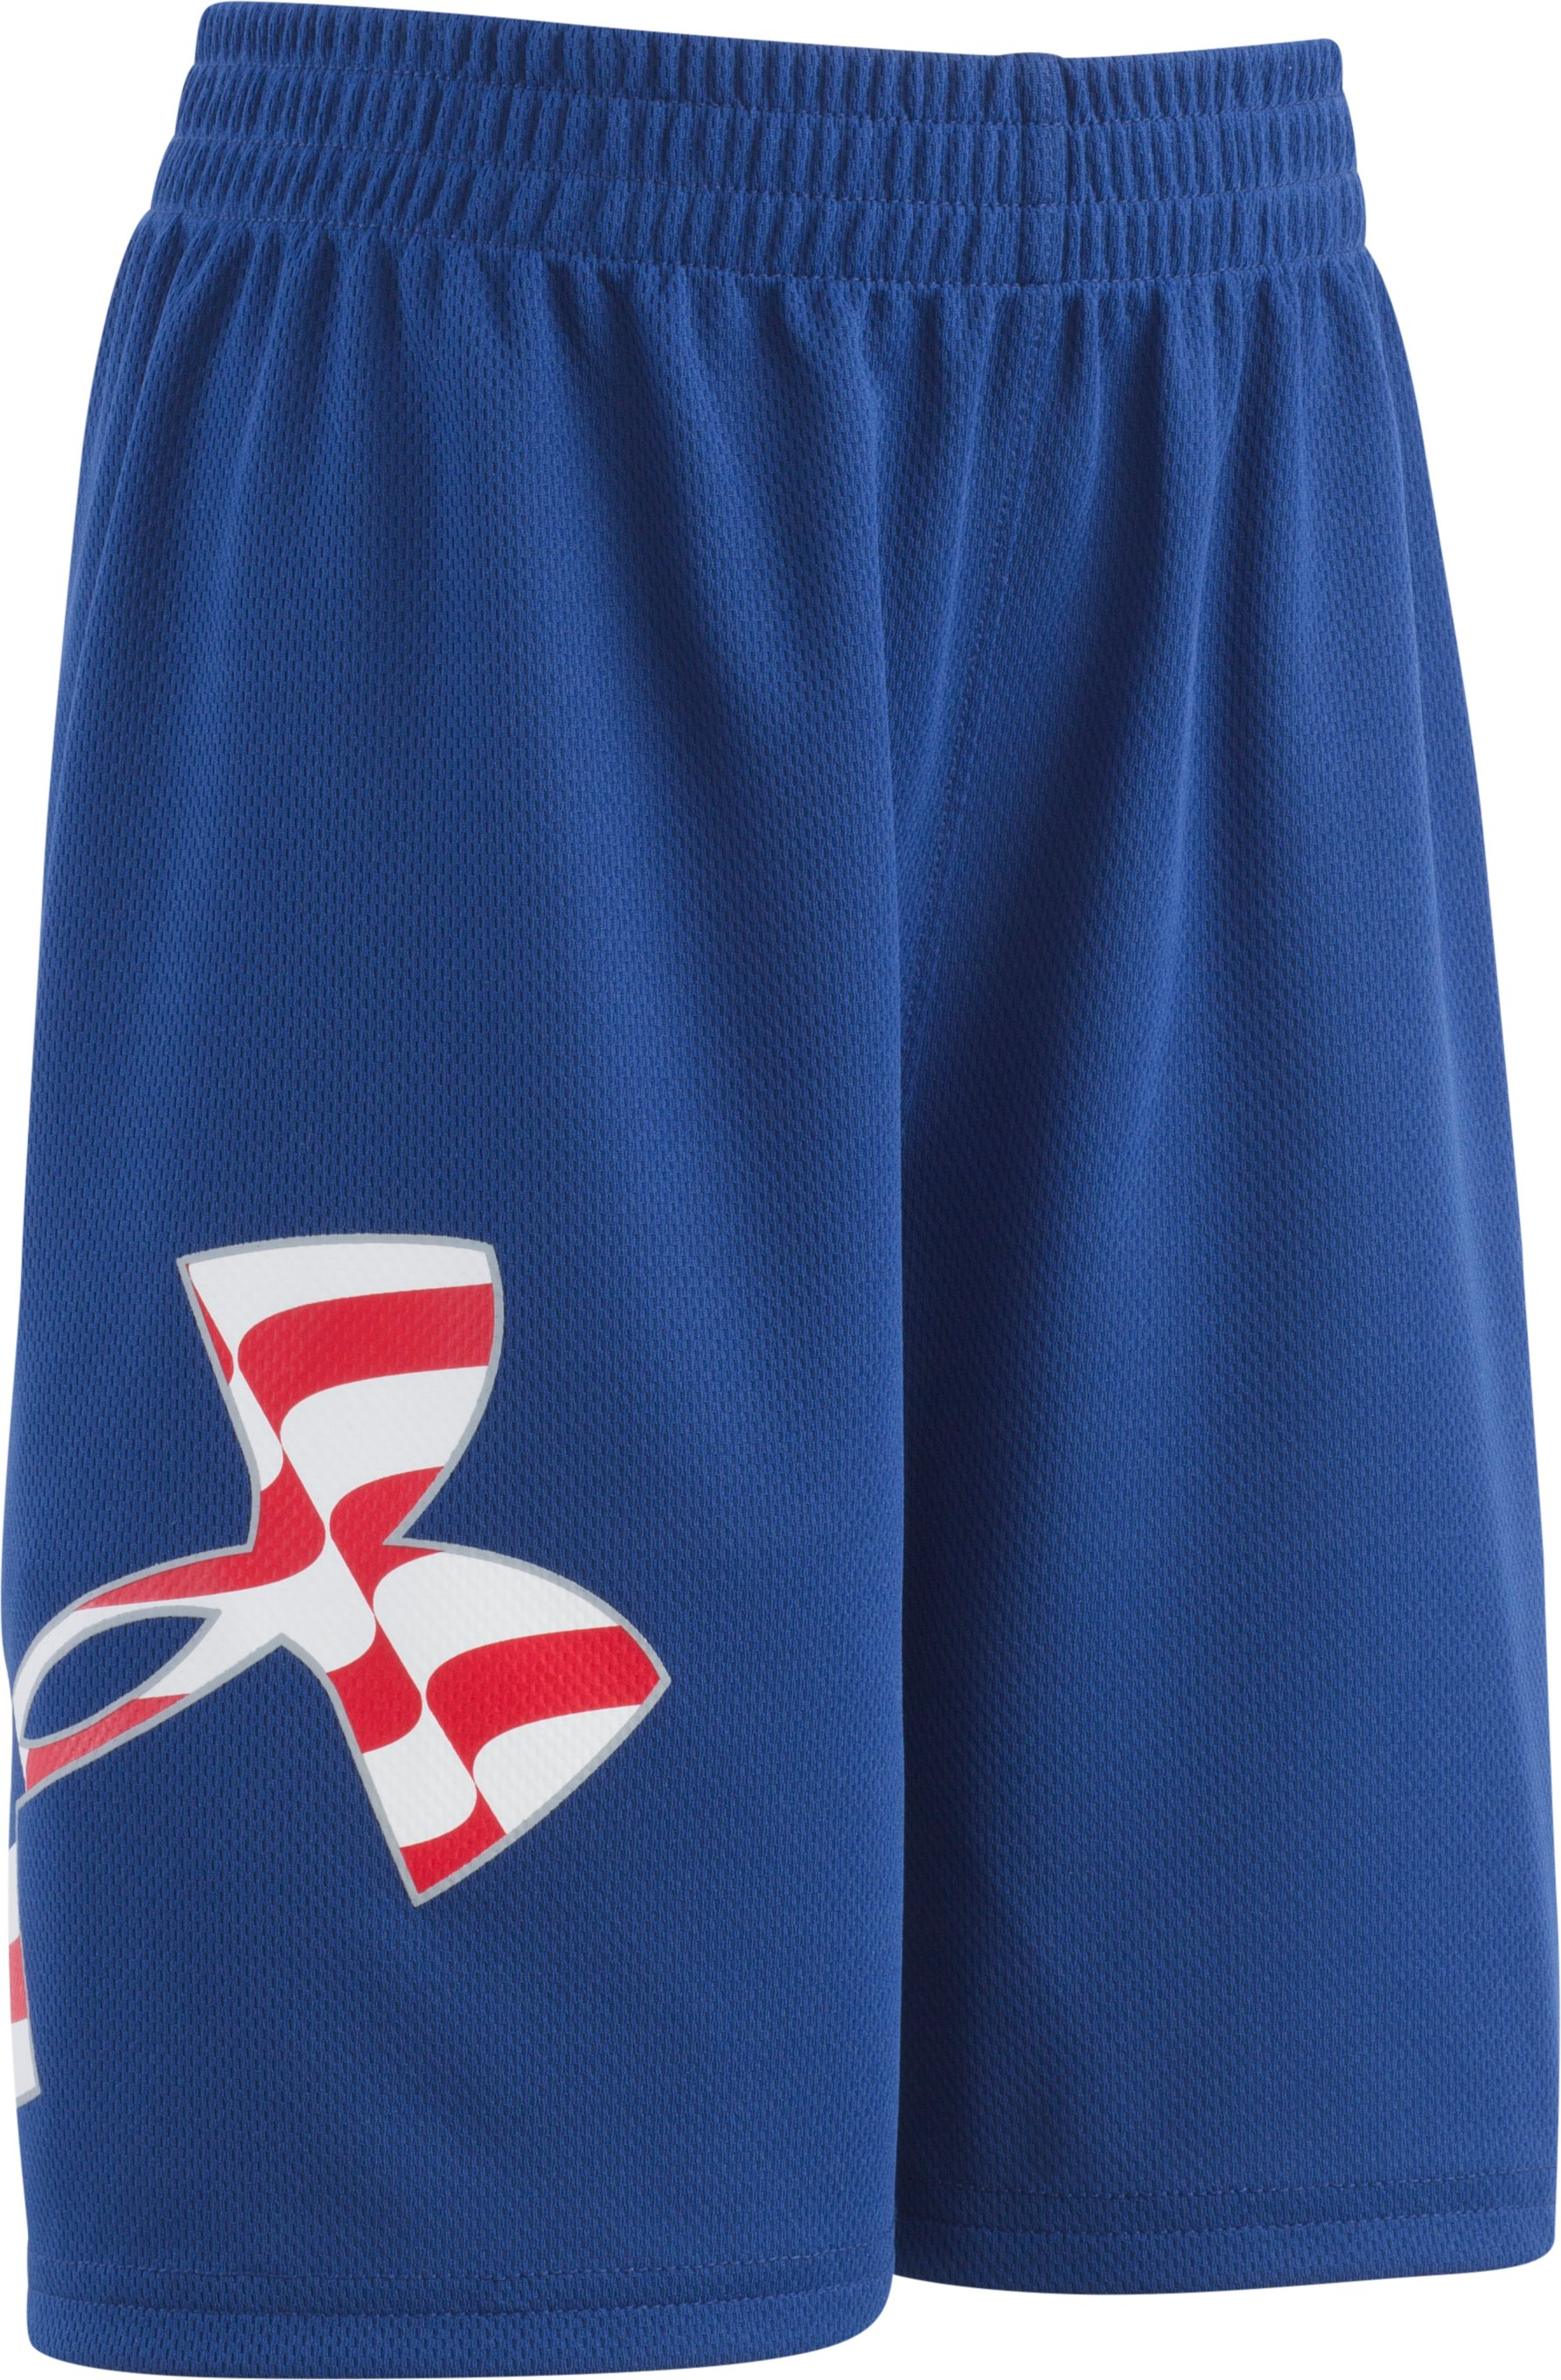 Boys' Toddler UA Big Logo Americana  Shorts, AMERICAN BLUE, Laydown